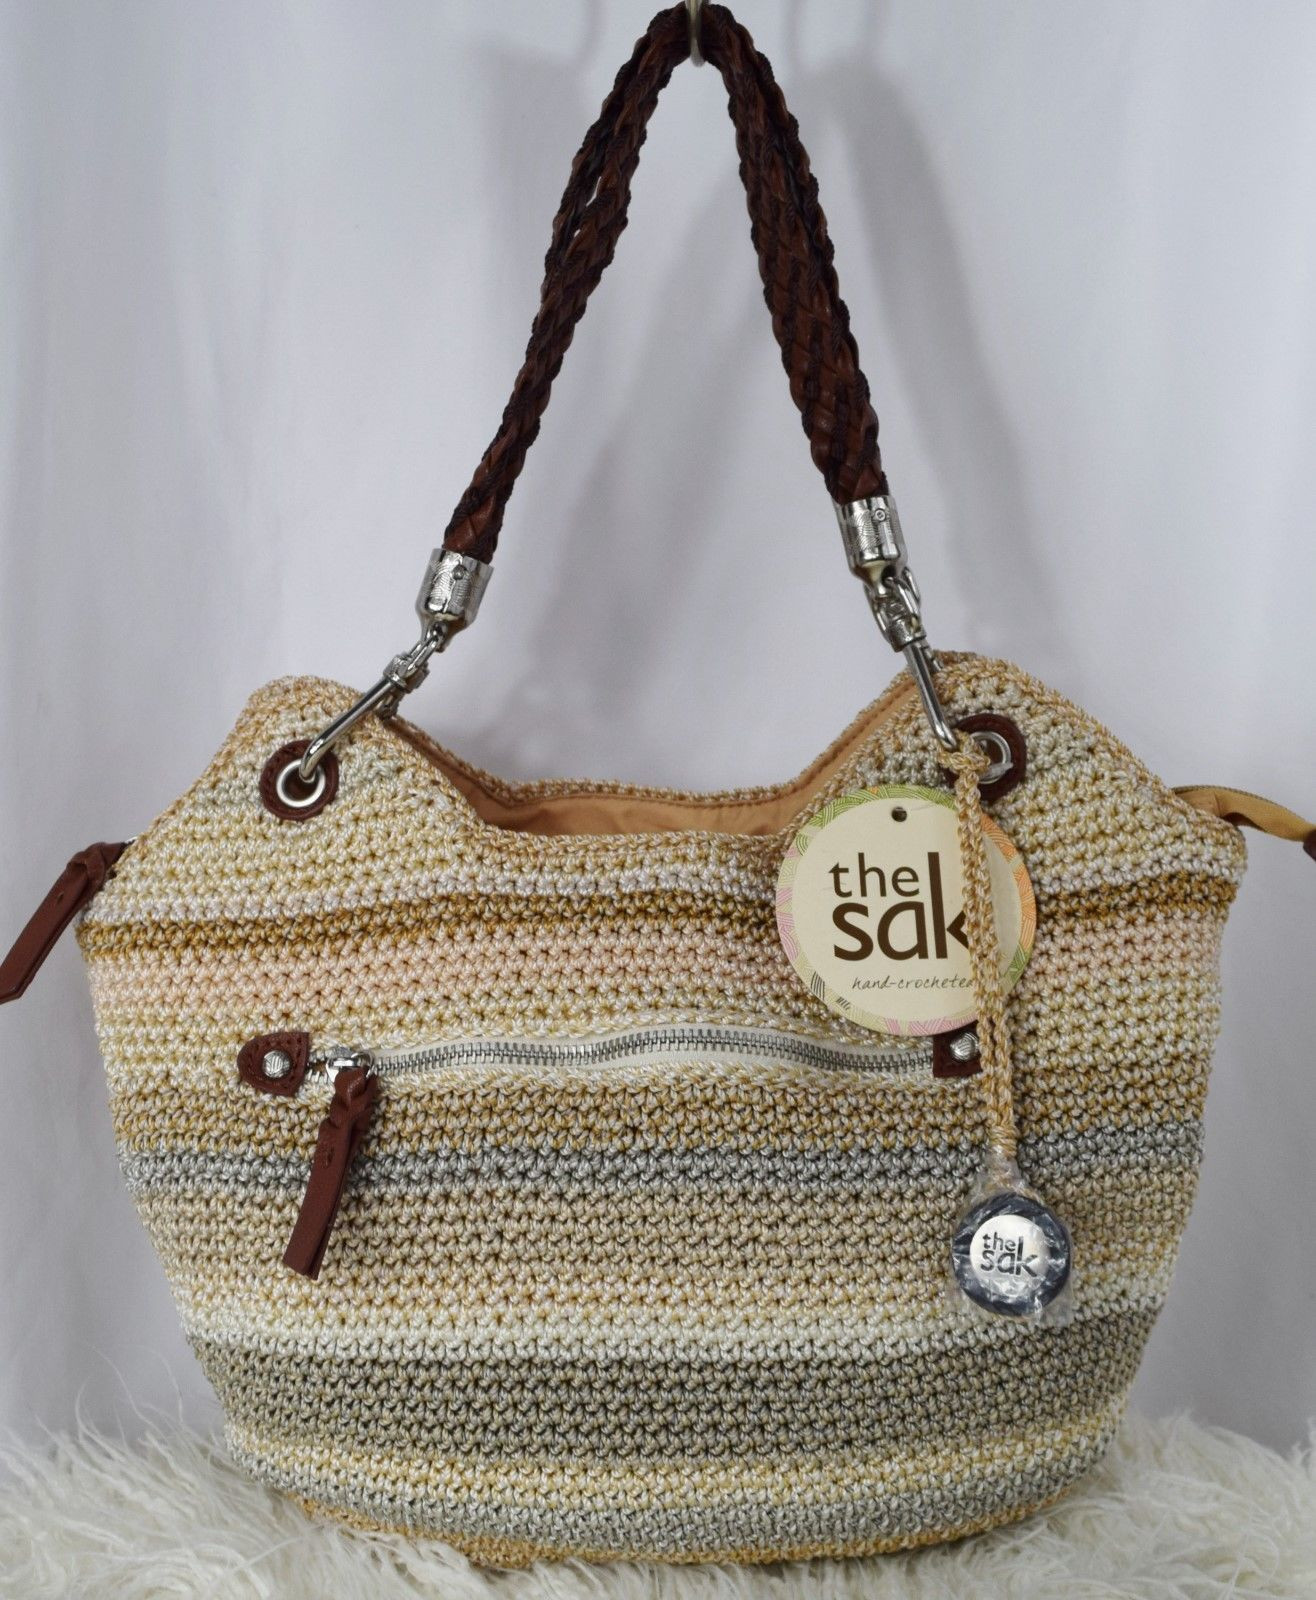 The Sak Crochet Inspirational Nwt the Sak Indio Crochet Satchel Handbag Sand Stripe Of The Sak Crochet Awesome the Sak Black Crochet Cross Body Shoulder Bag Purse Handbag